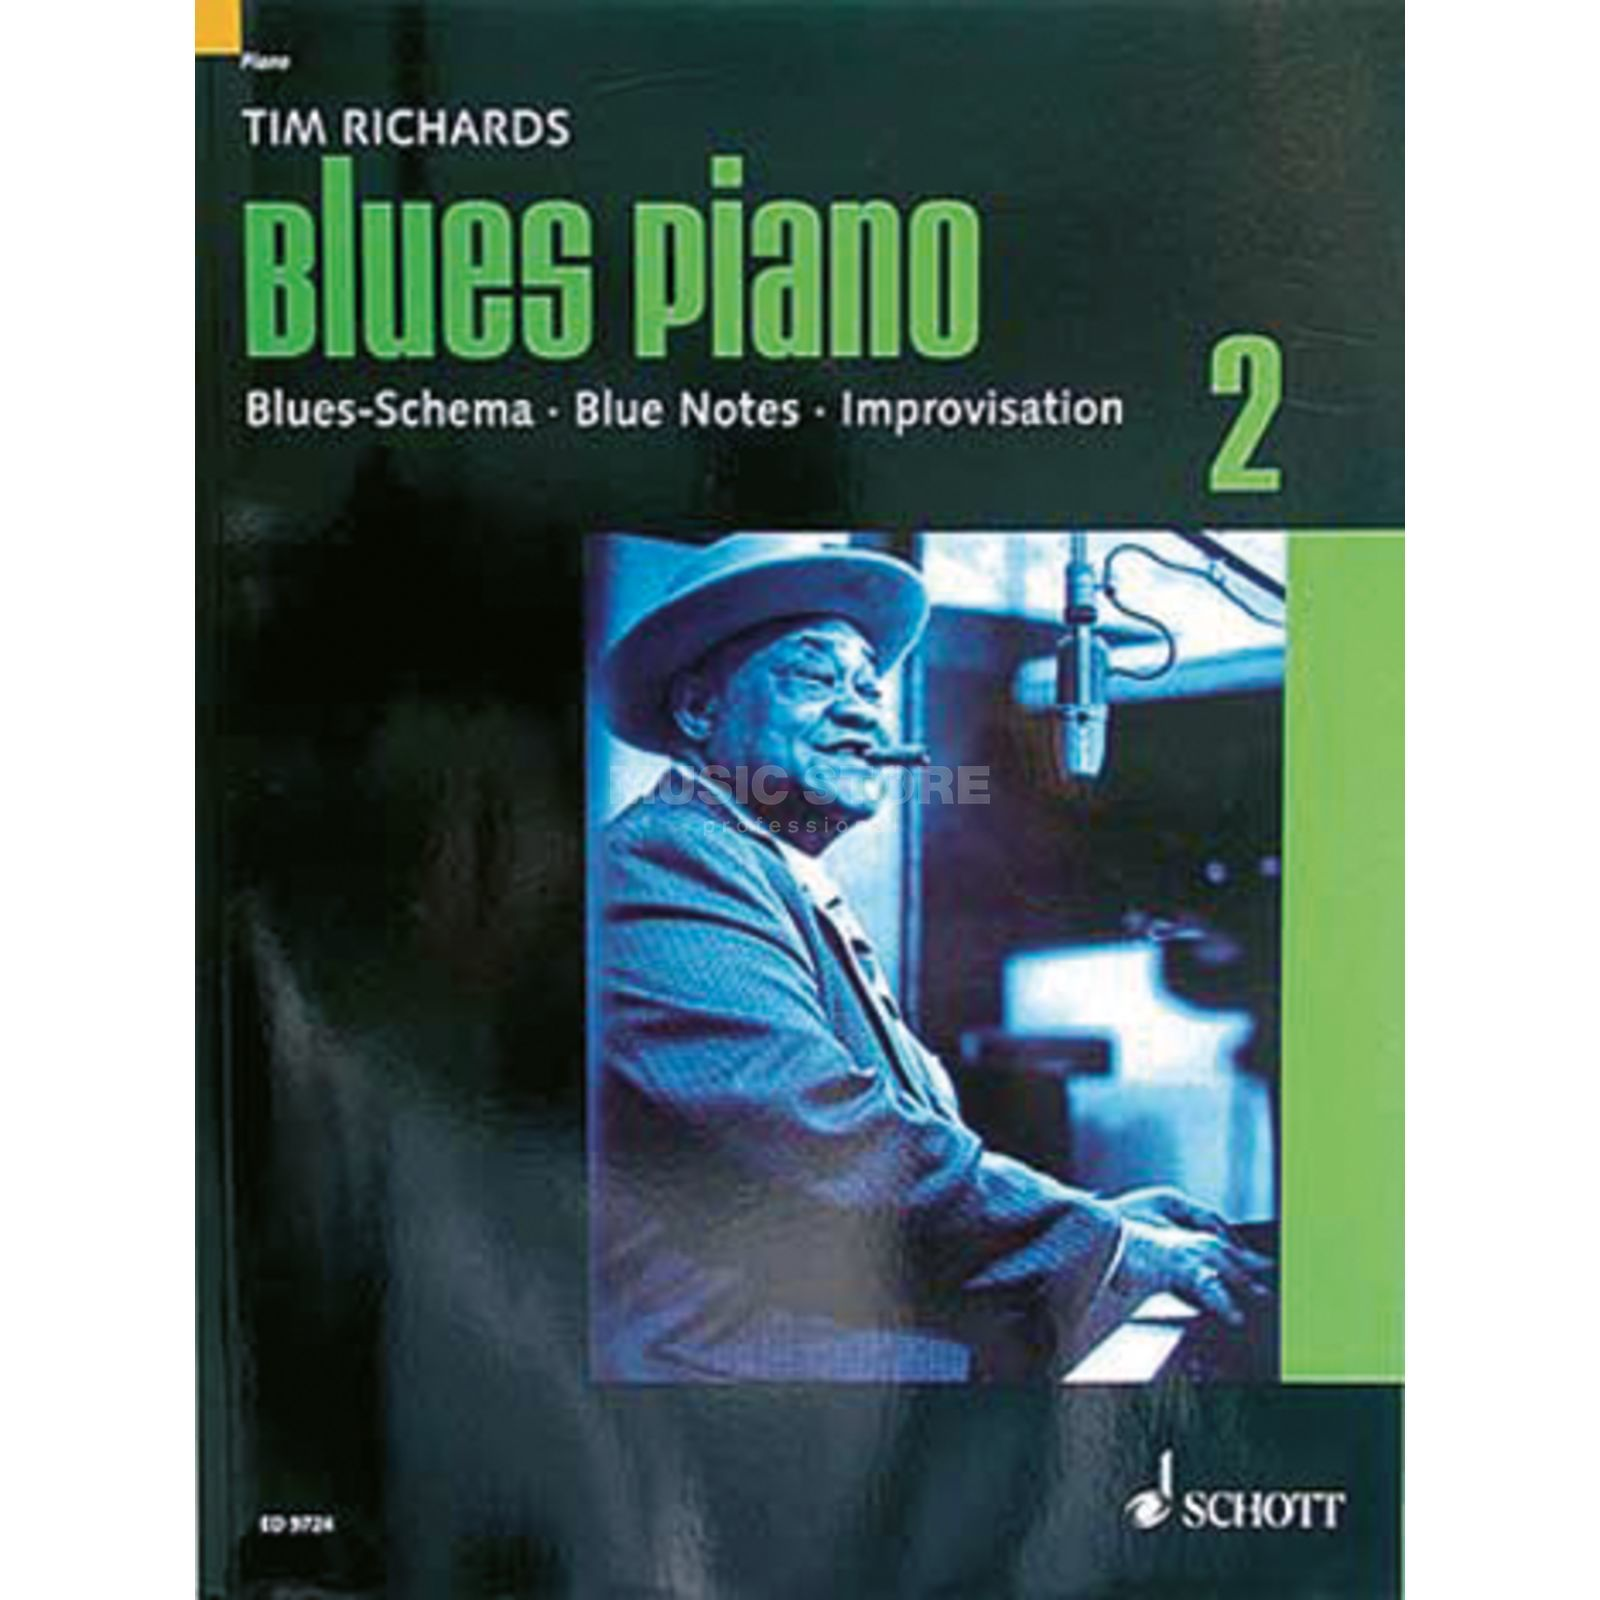 Schott-Verlag Blues Piano Band 2 Tim Richards Produktbild